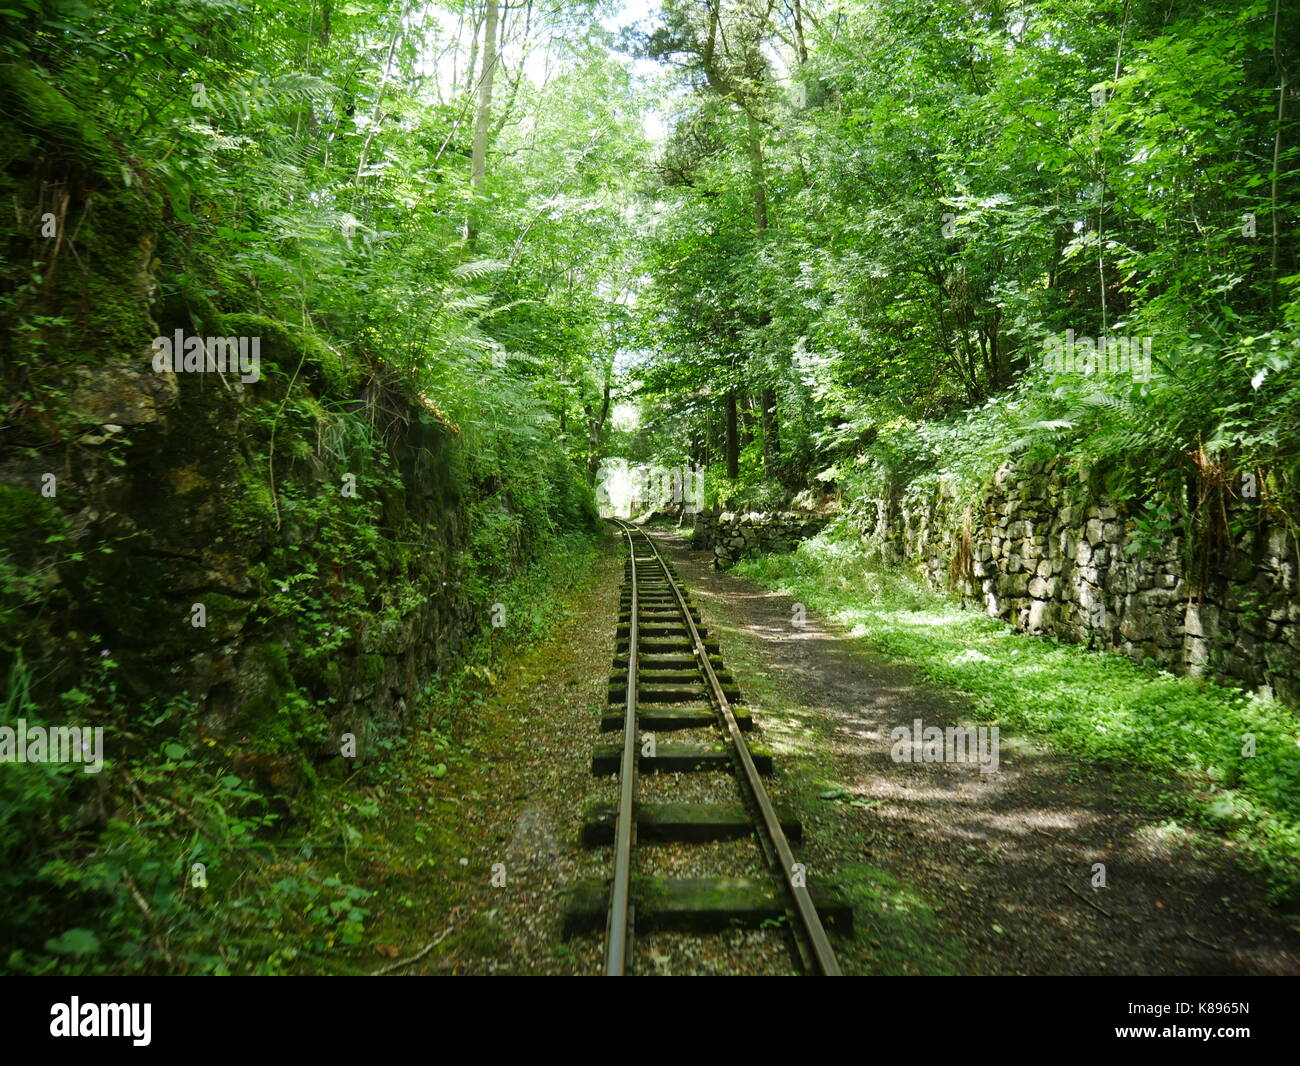 The view from a locomotive at Steeple Grange Light Railway, Wirksworth, Derbyshire - Stock Image